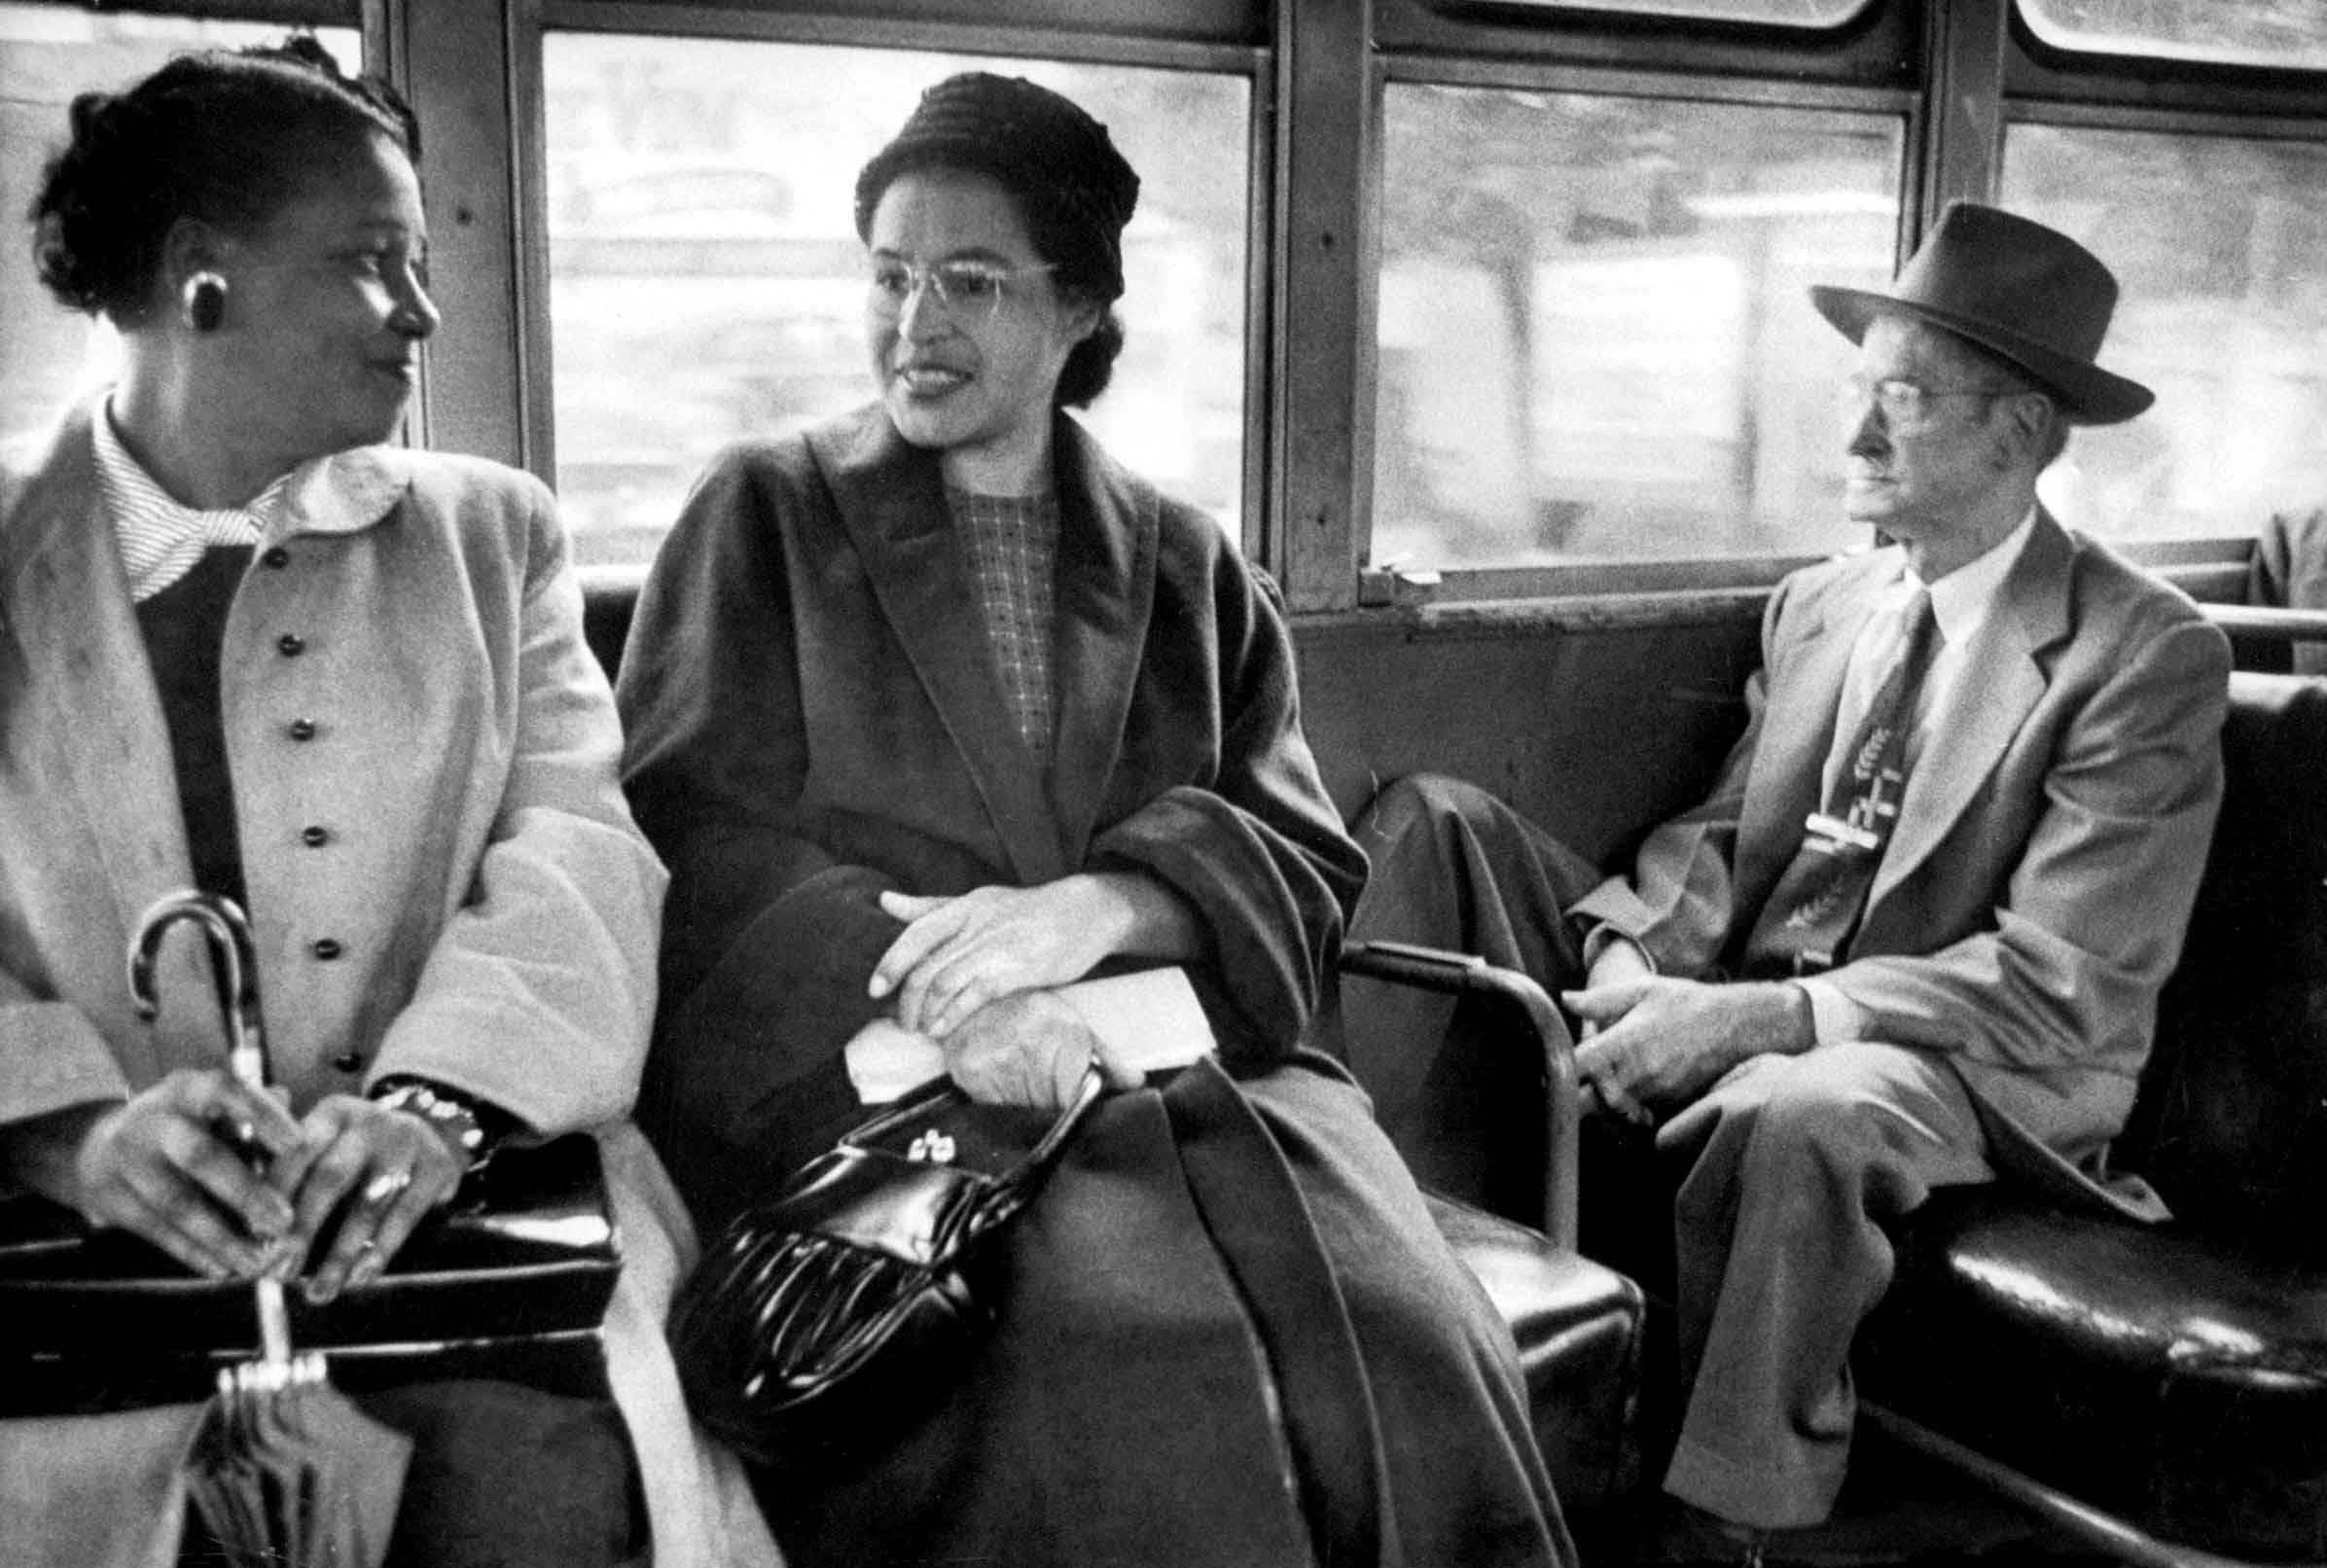 Parks riding on a newly integrated bus. Photo by Don Cravens/The LIFE Images Collection via Getty Images.